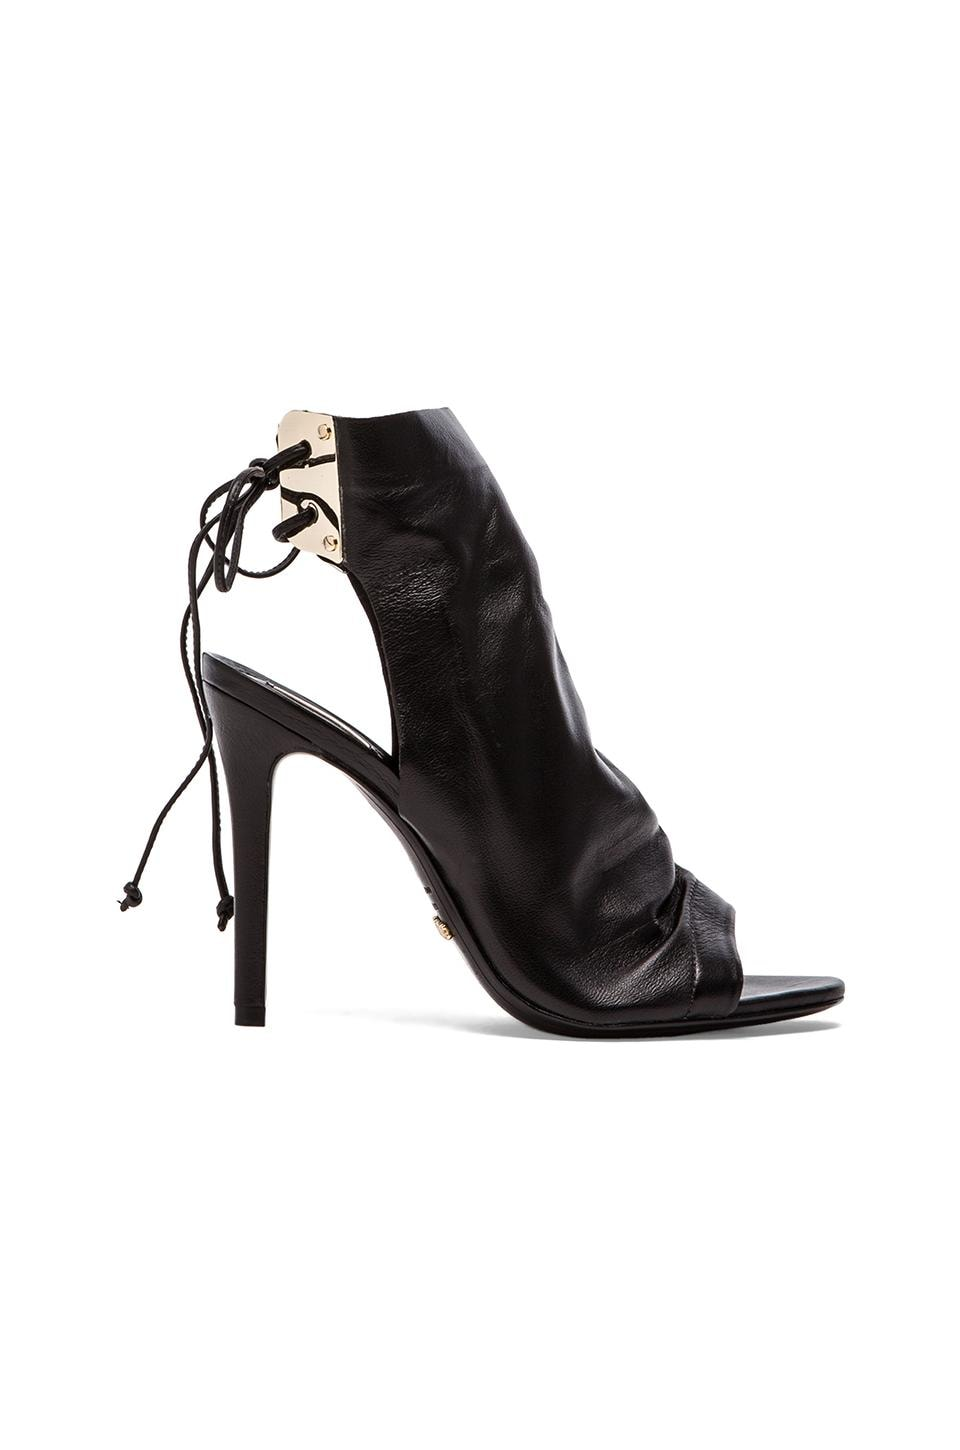 Schutz Mirtis Heel in Black